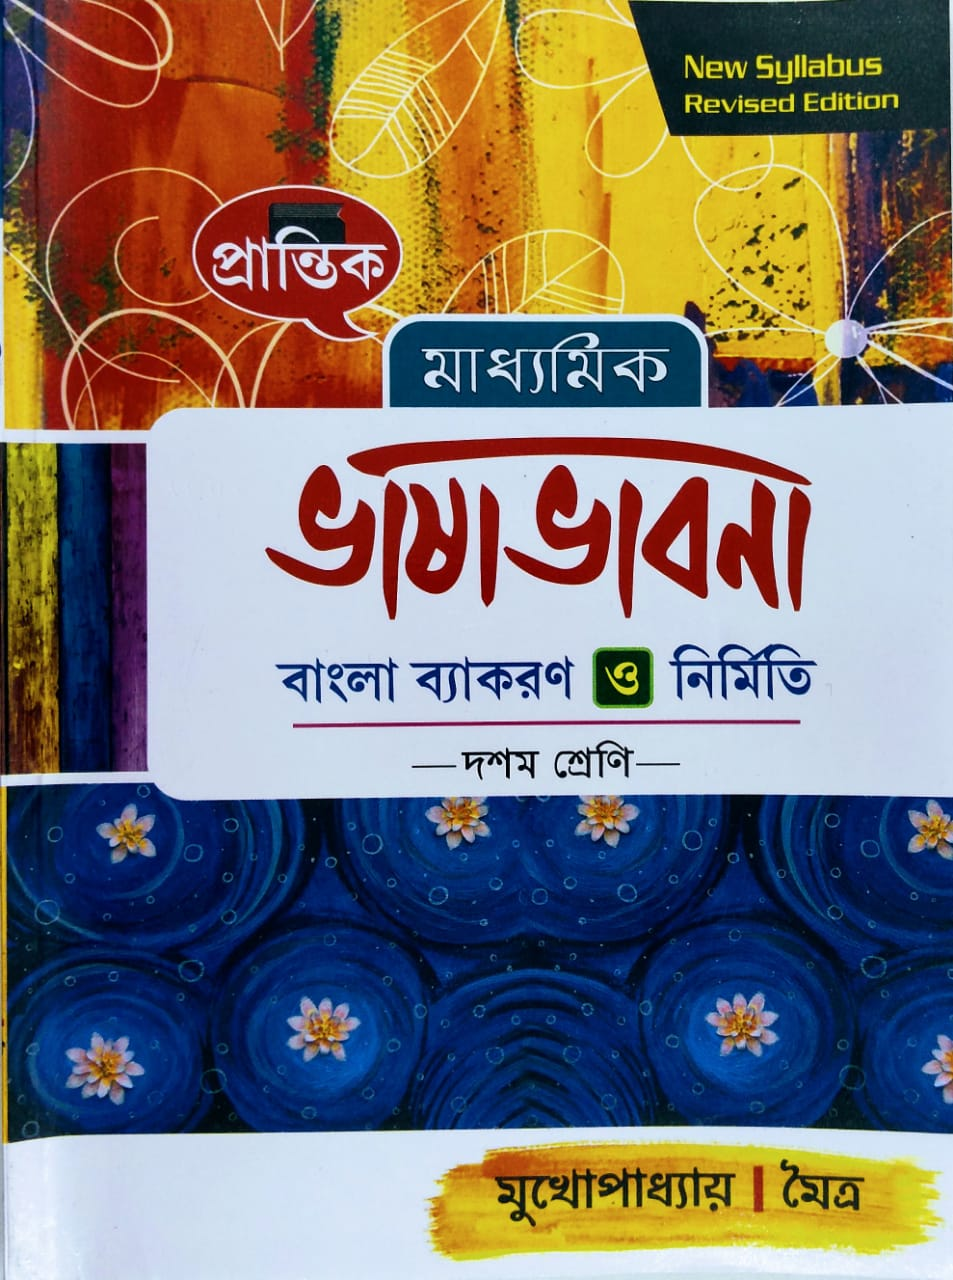 Madhyamik Vasha Bhabna Bangla Bakaron new edition 2020